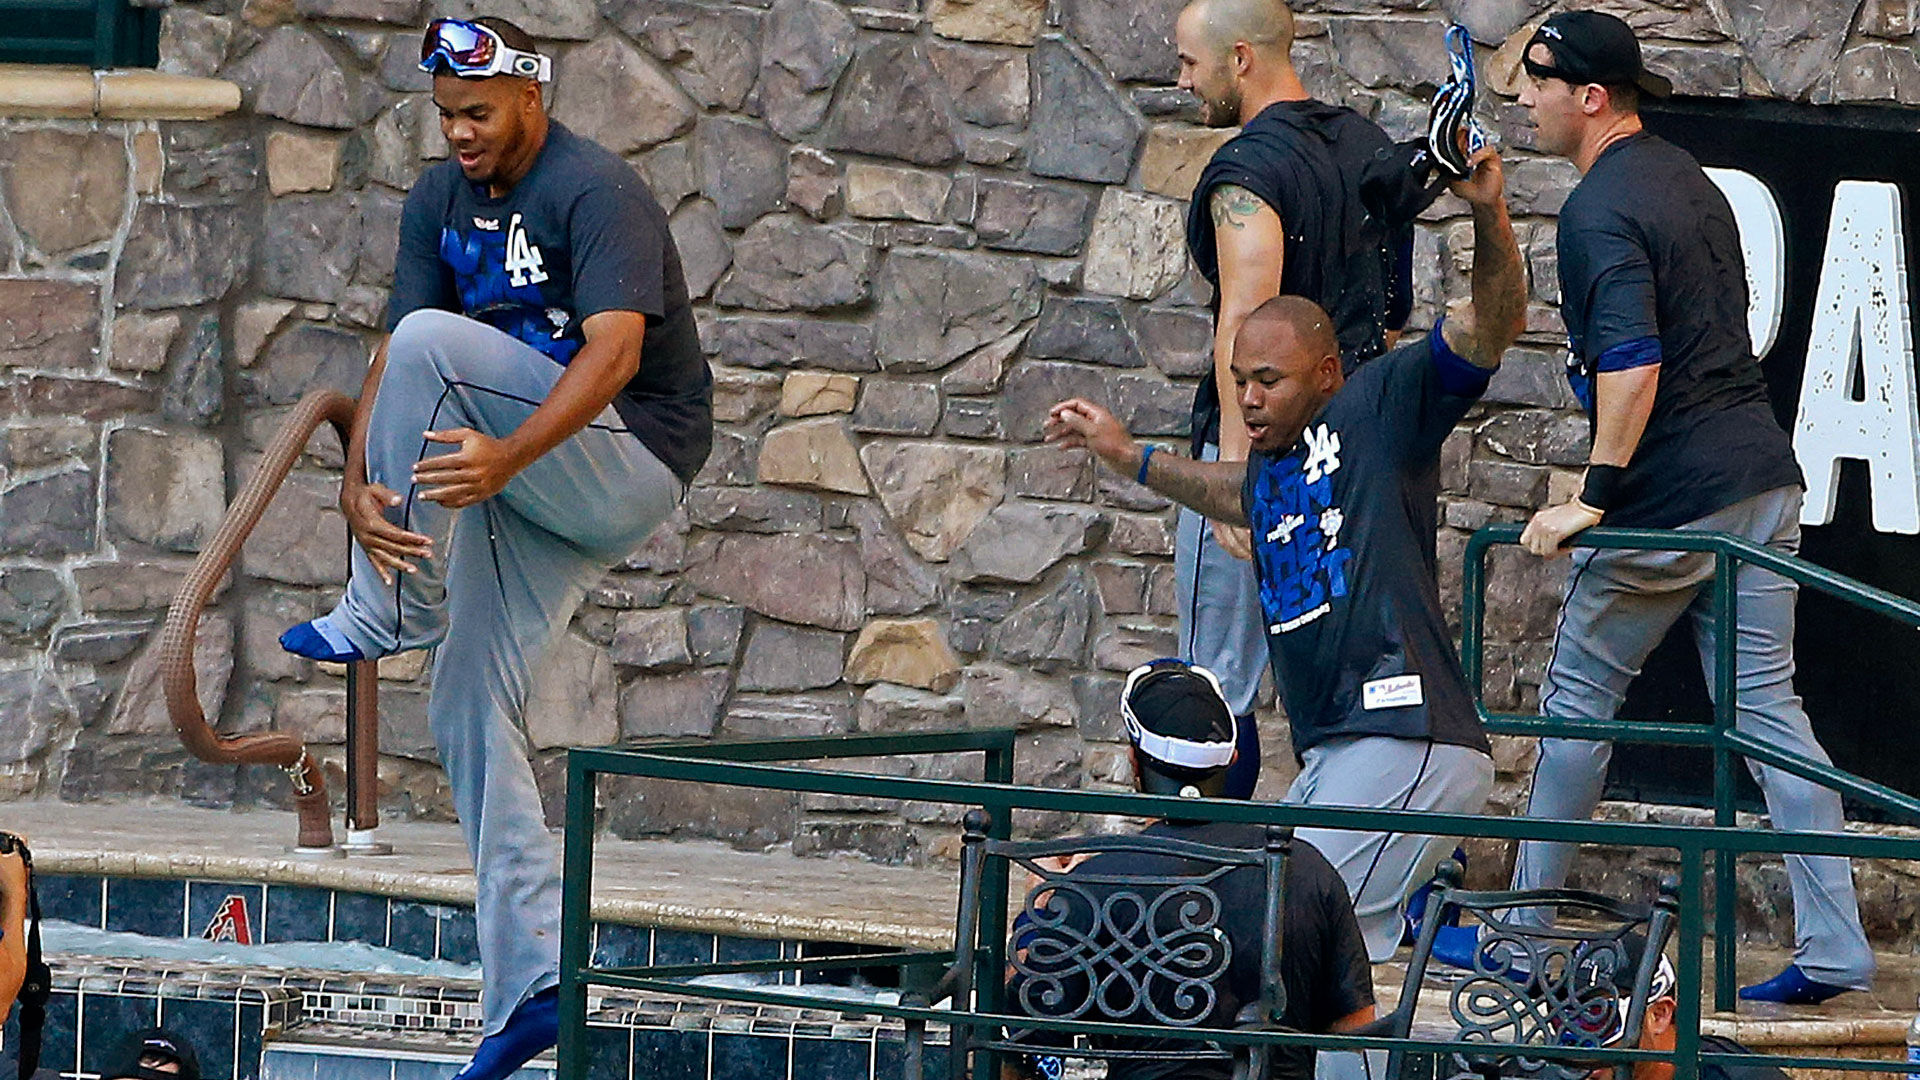 Dodgers pool-120213-AP-FTR.jpg